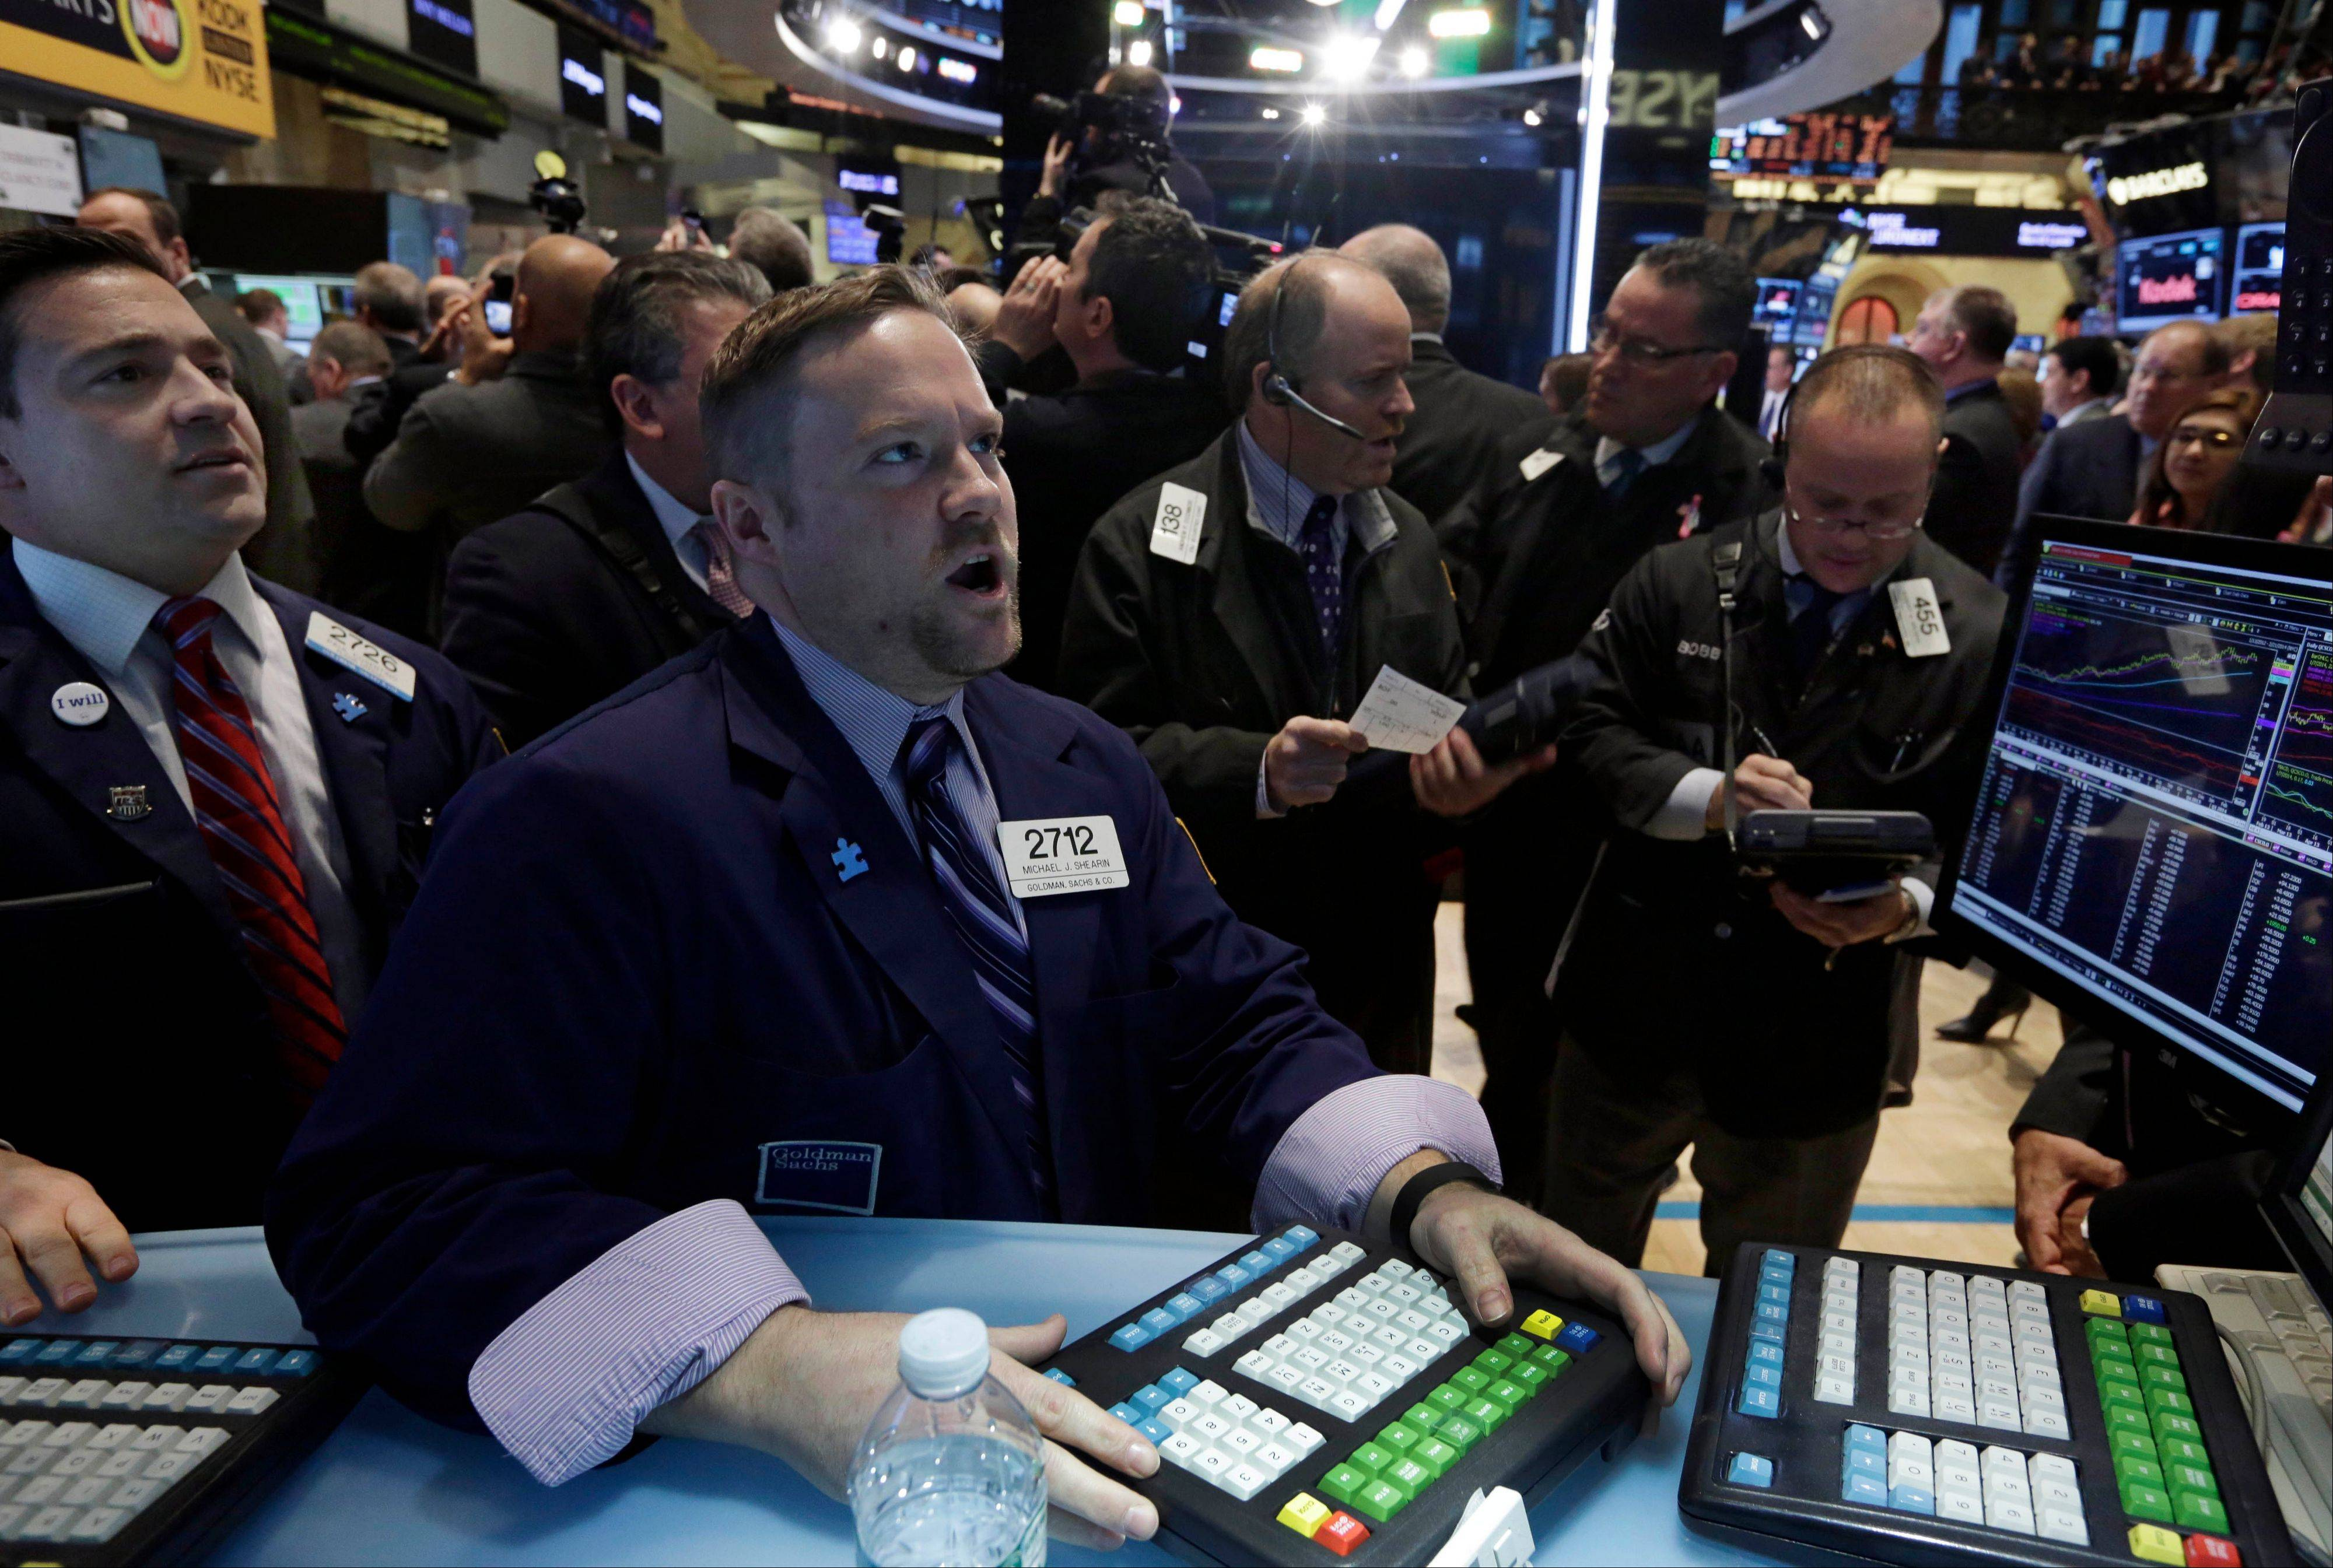 Specialist Michael Shearin, foreground center, works at his post on the floor of the New York Stock Exchange Wednesday.